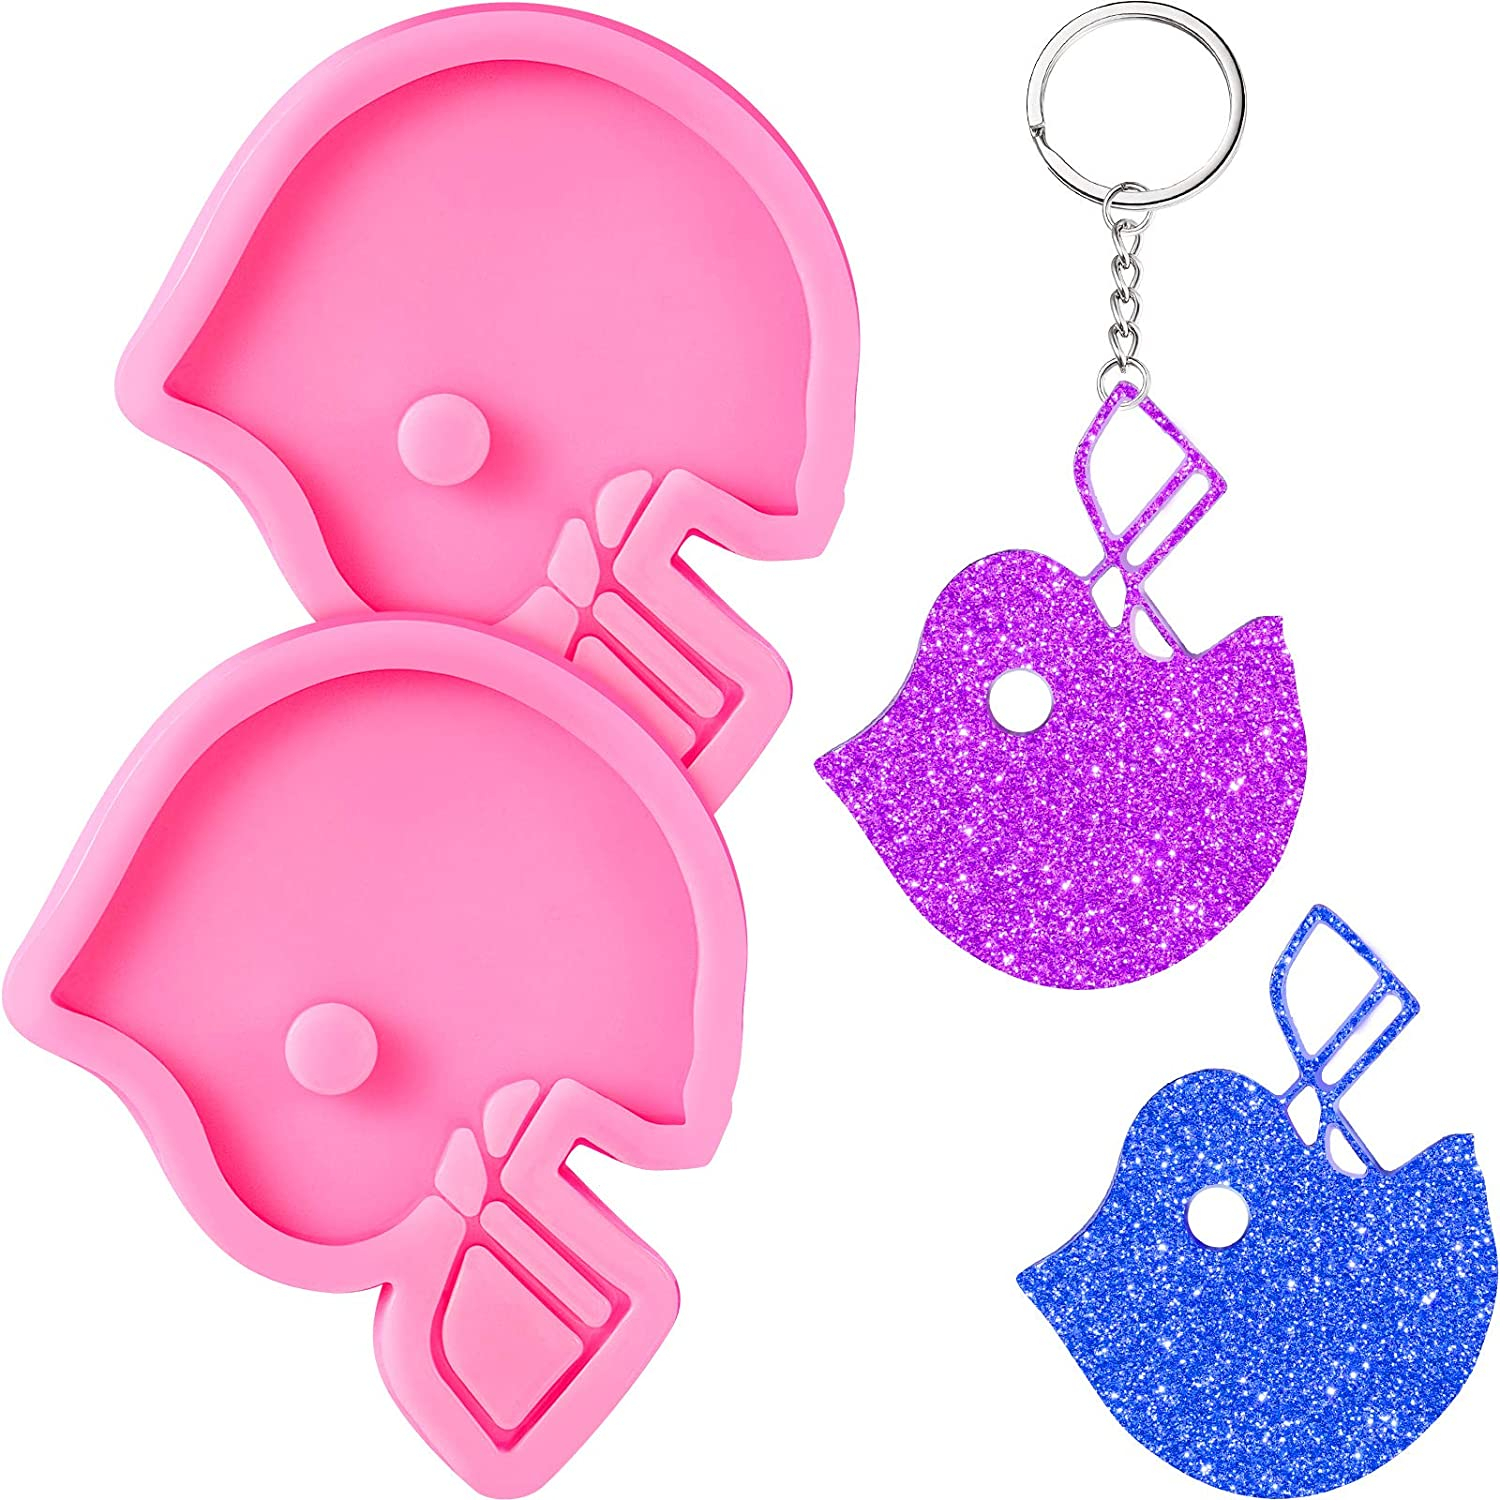 2 Pieces Football Helmets Keychains Silicone Molds Football Helmets Shaped Keychain Molds Chocolate Candy Molds Fondant Cake Molds and 20 Pieces Keyrings with Chain for DIY Baking Crafting Cake